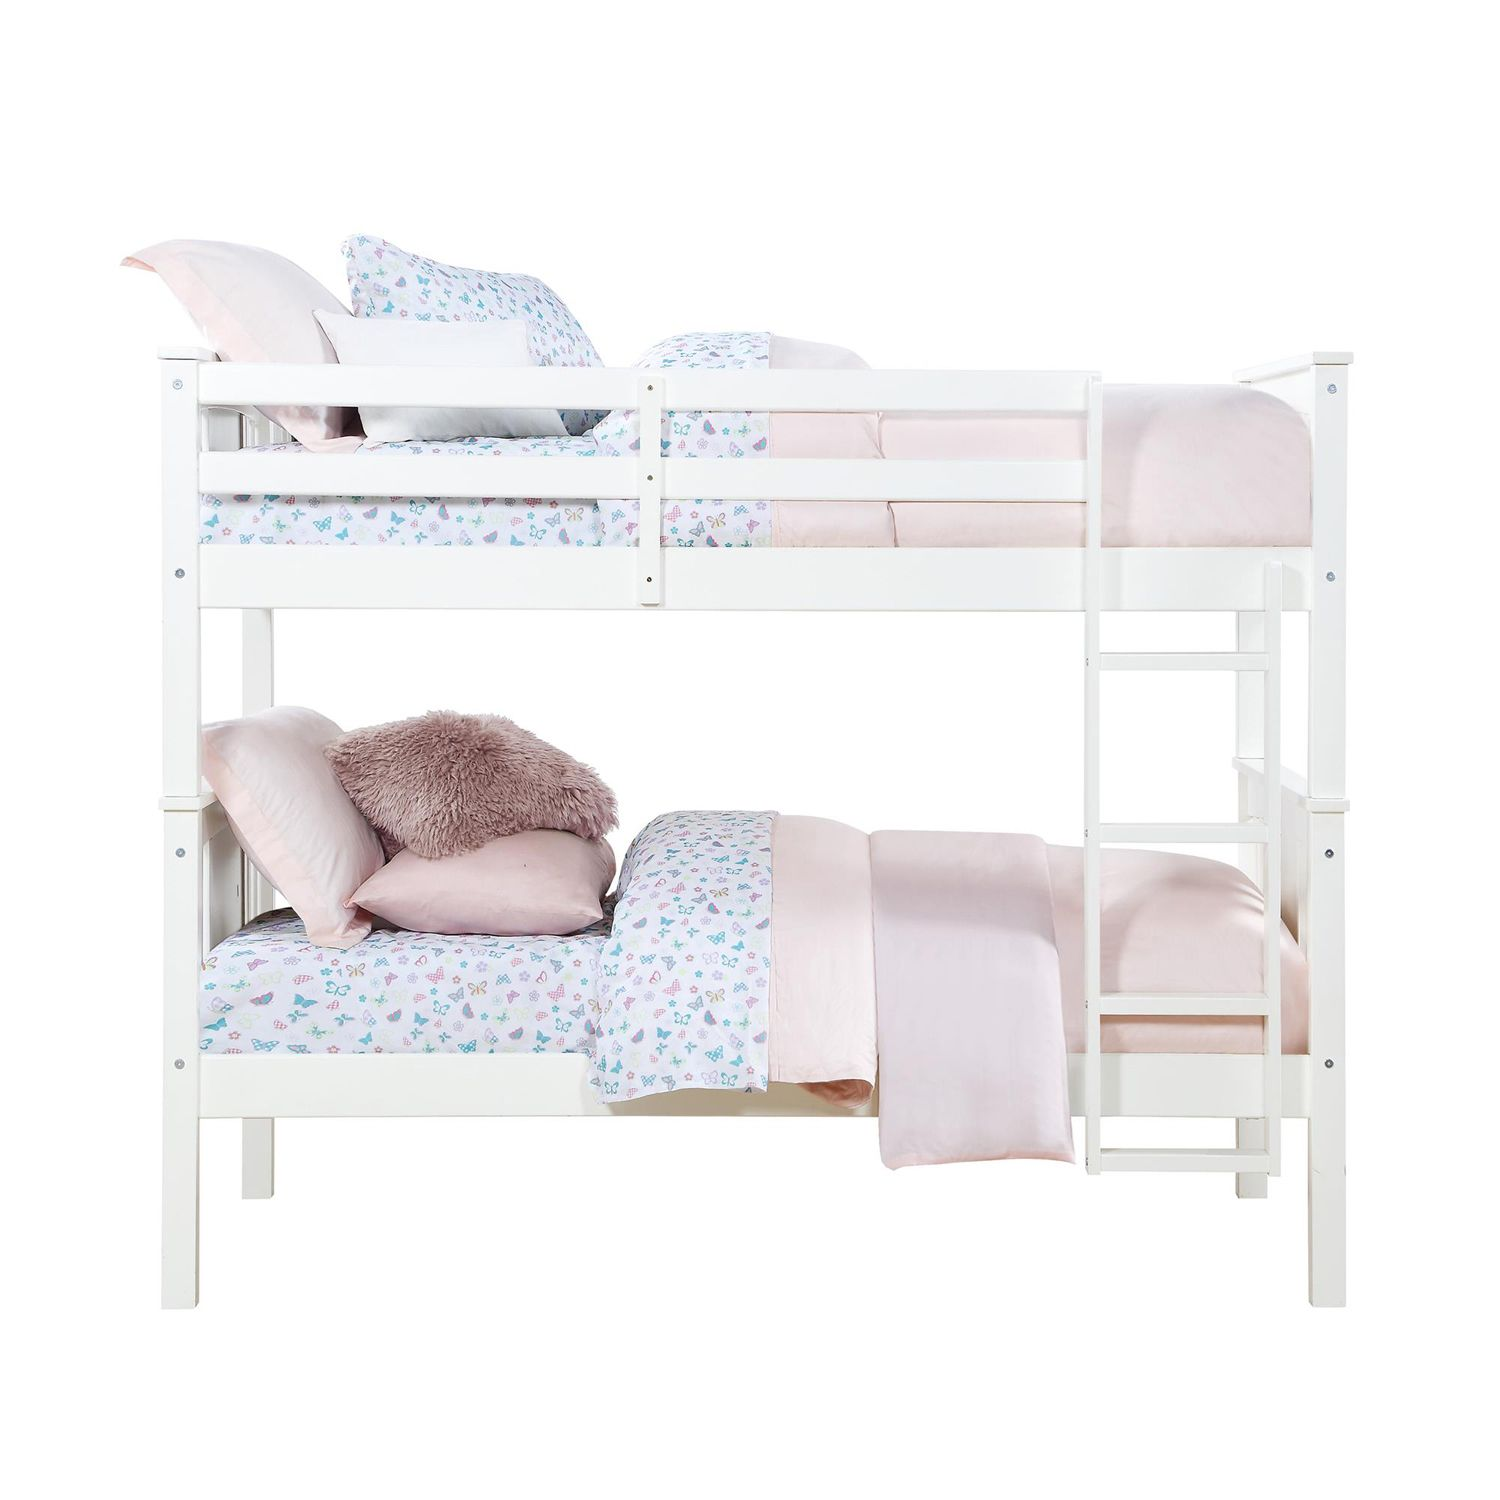 Uptown White Twin Bed Crate And Barrel With Images Kids Twin